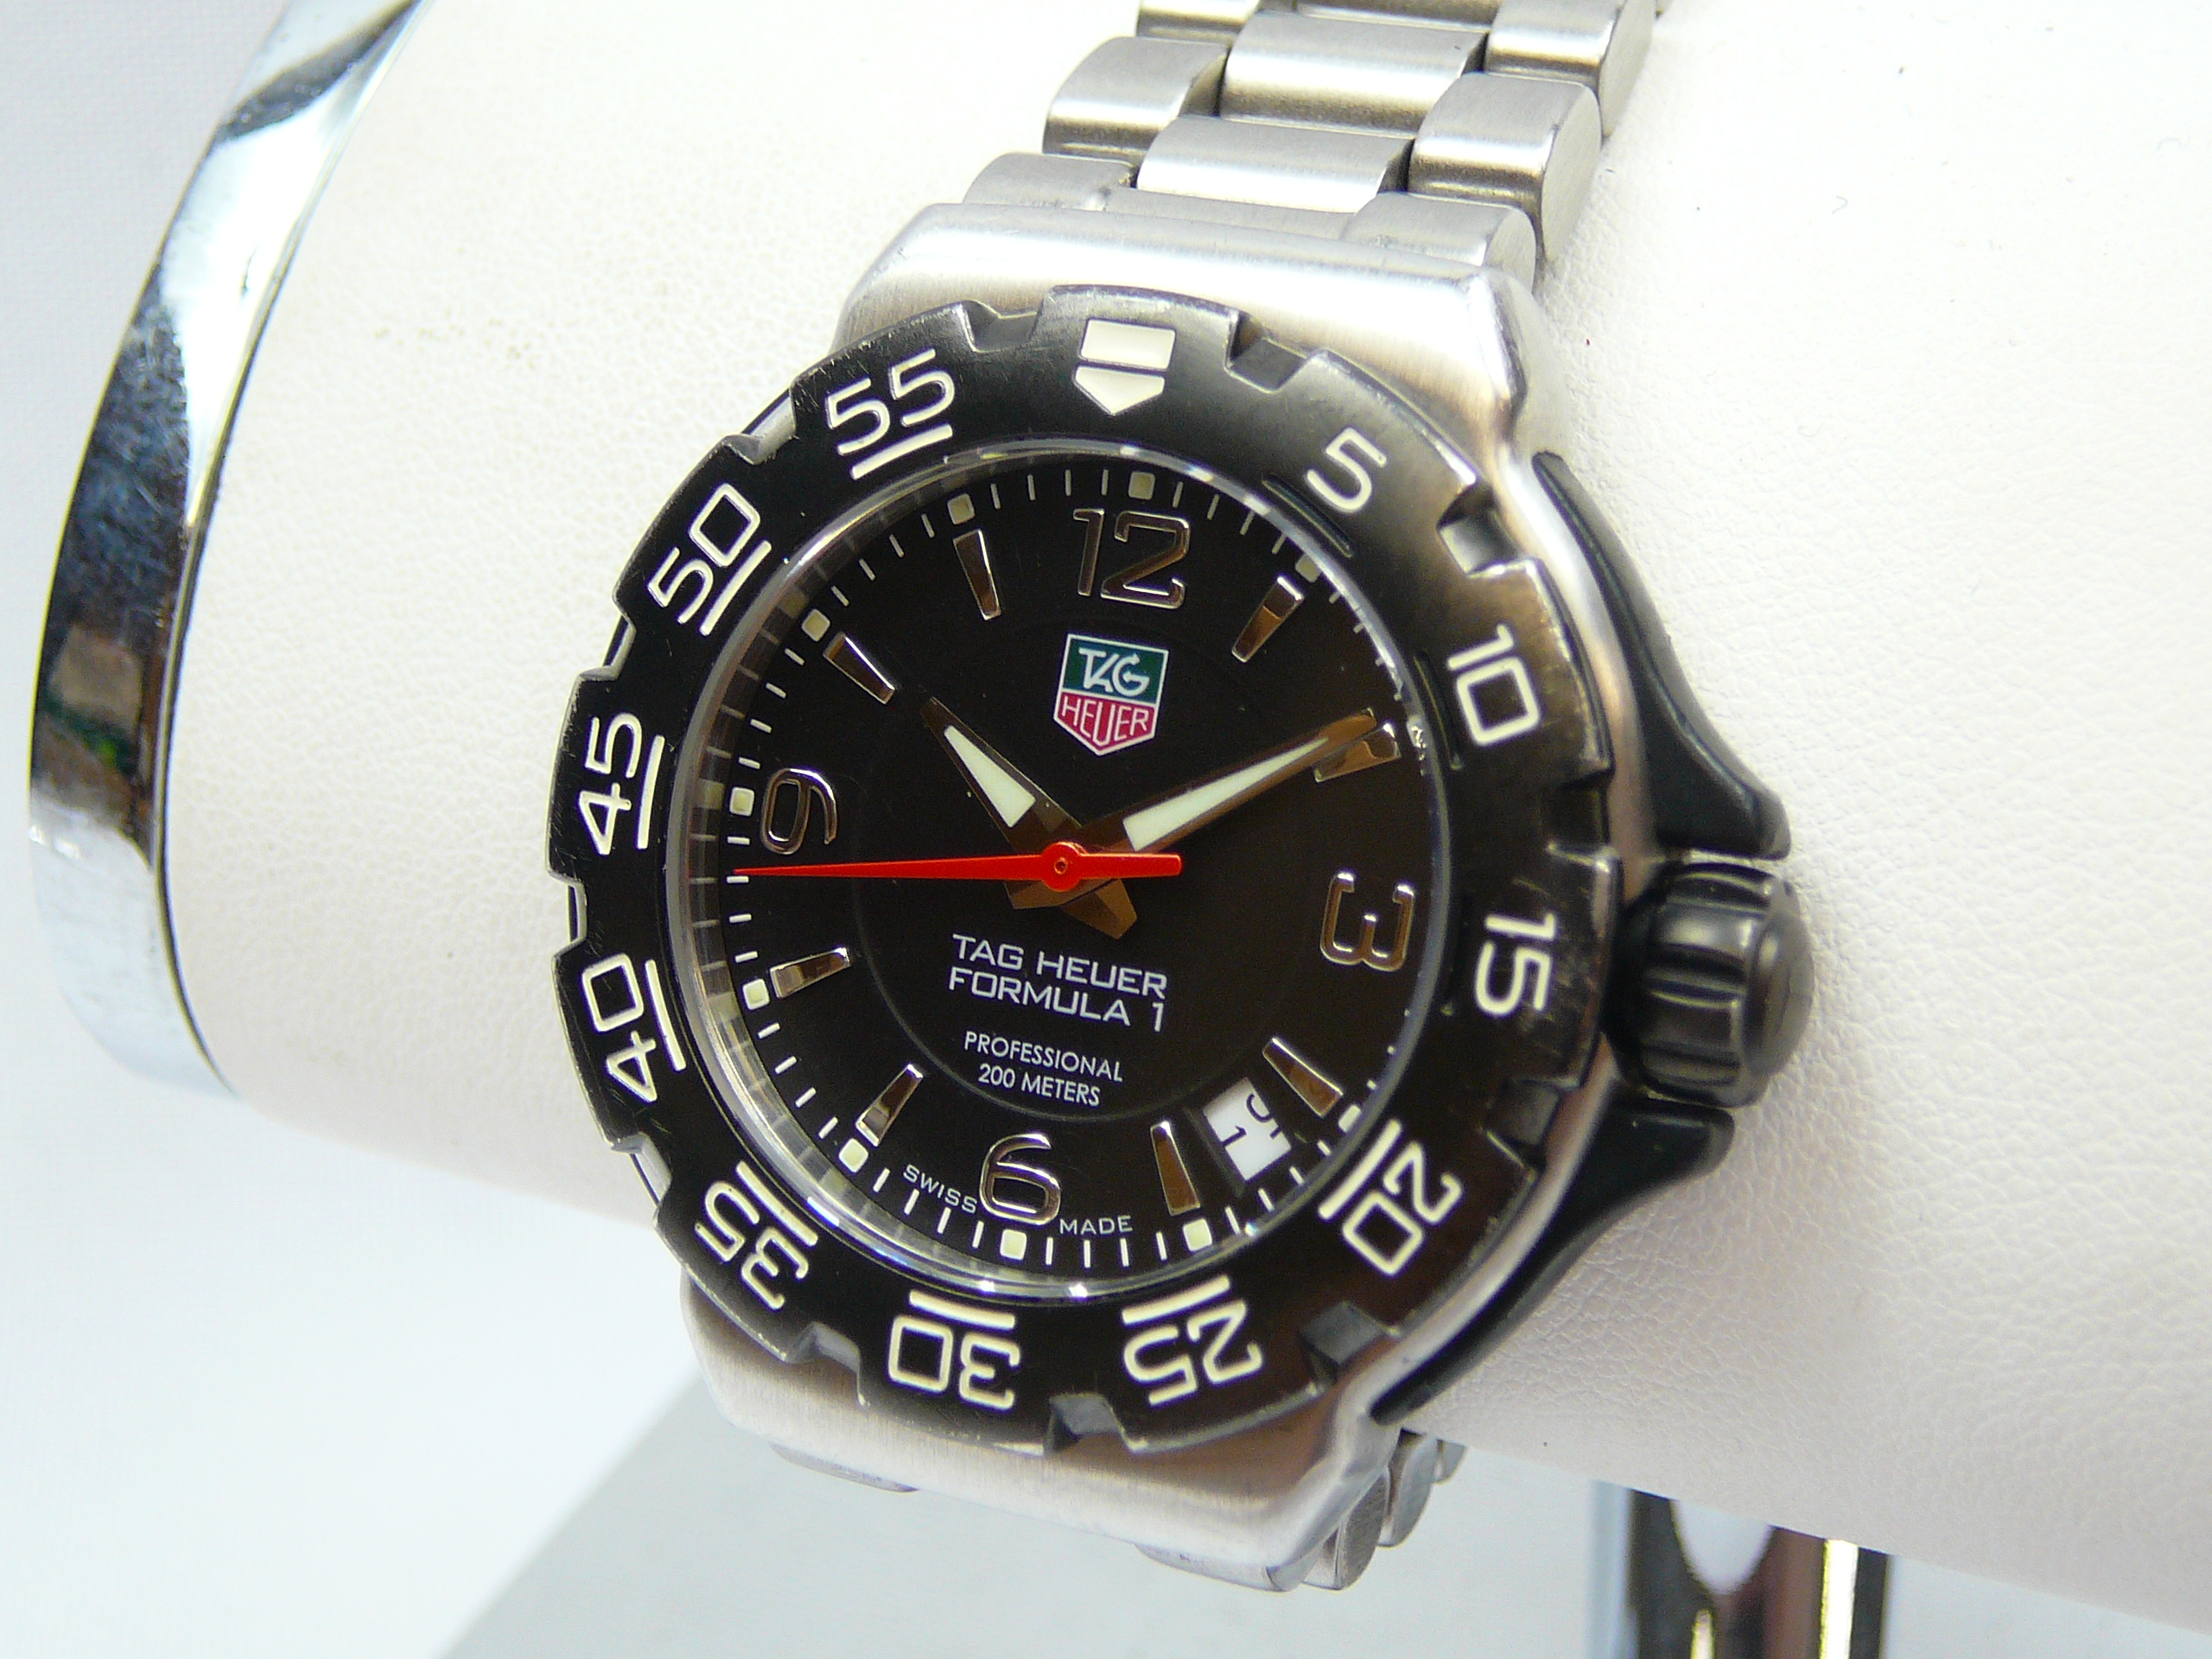 Mid Size Tag Heuer Wrist Watch - Image 2 of 3